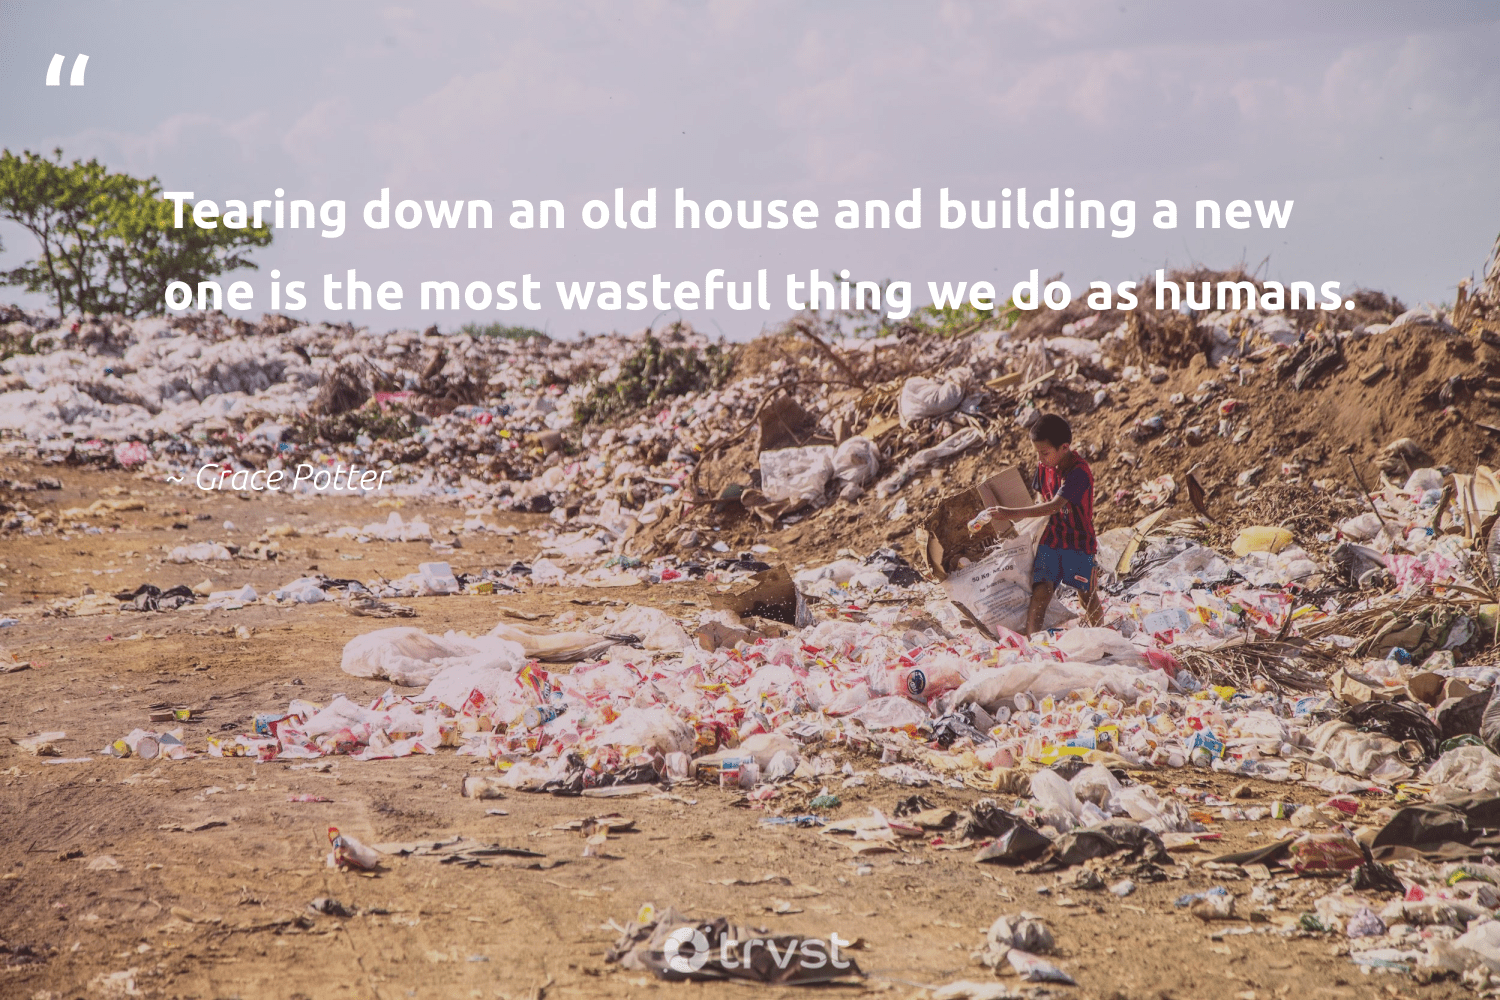 """""""Tearing down an old house and building a new one is the most wasteful thing we do as humans.""""  - Grace Potter #trvst #quotes #environmentallyfriendly #dosomething #gogreen #bethechange #greenliving #ecoconscious #planetearthfirst #impact #wastefree #socialchange"""